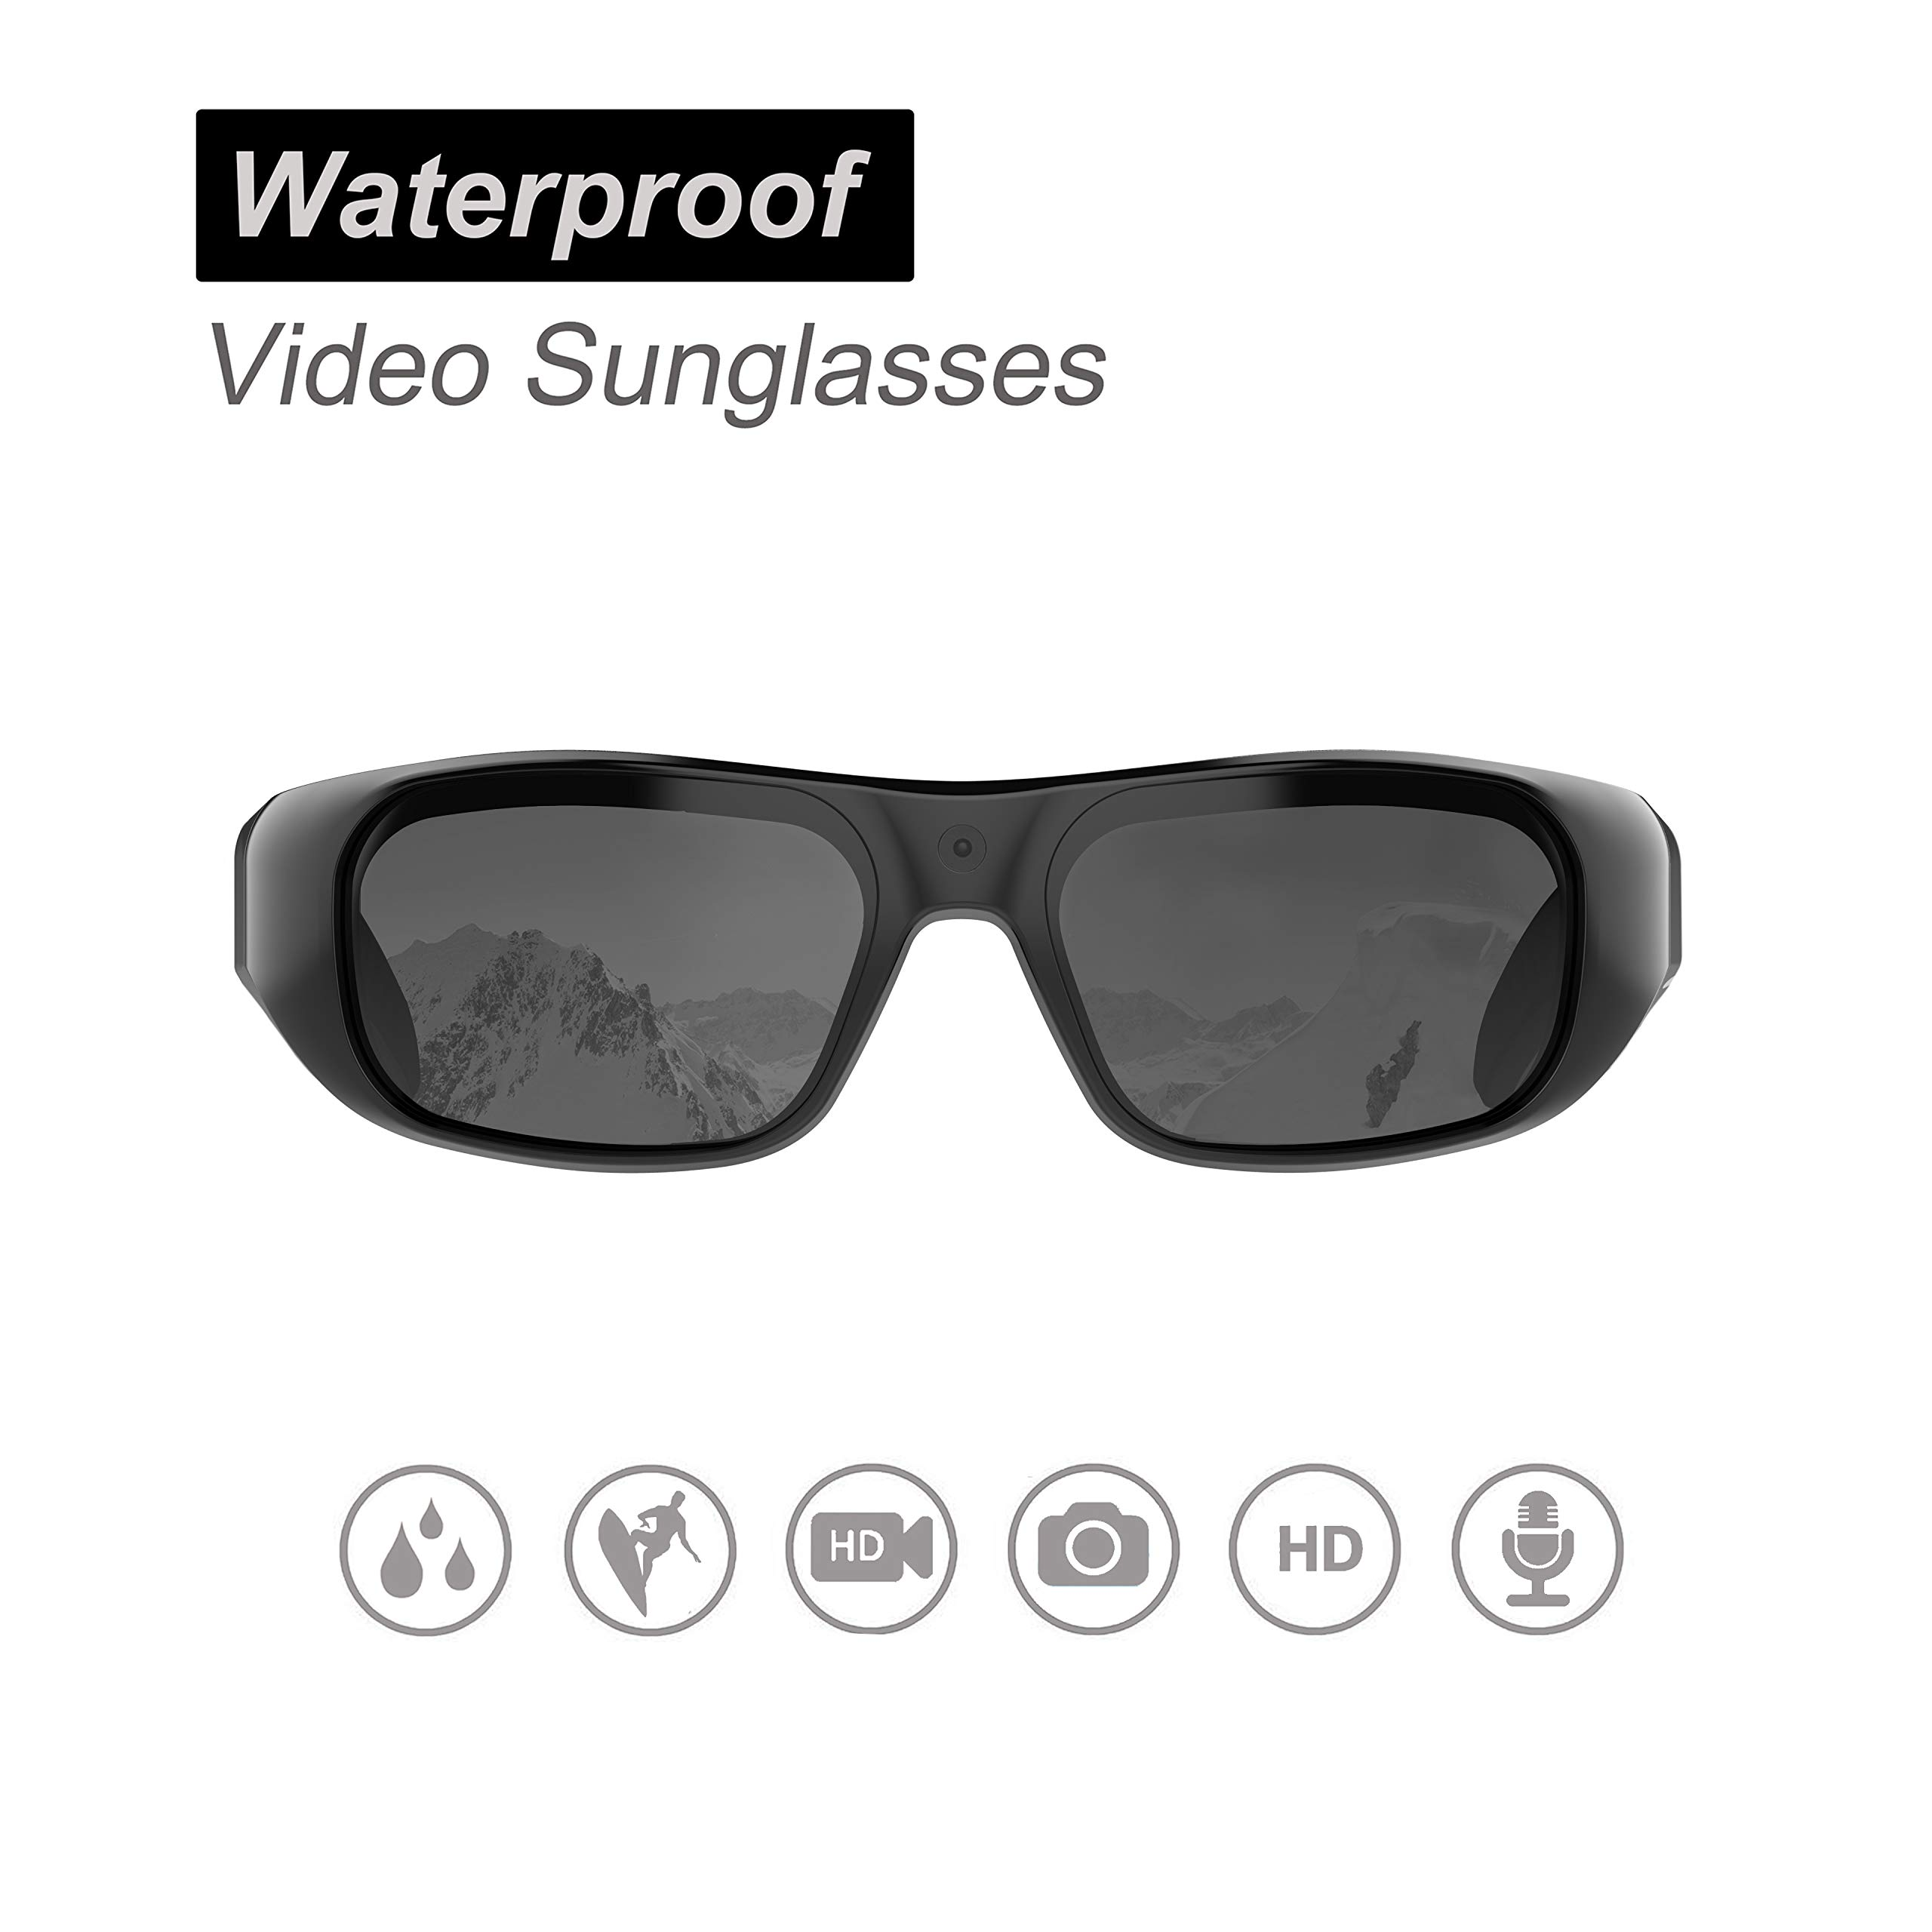 Waterproof Video Sunglasses,16GB 1080 HD Outdoor Sports Action Camera and Polarized UV400 Protection Safety Lenses,Unisex Sport Design by OhO sunshine